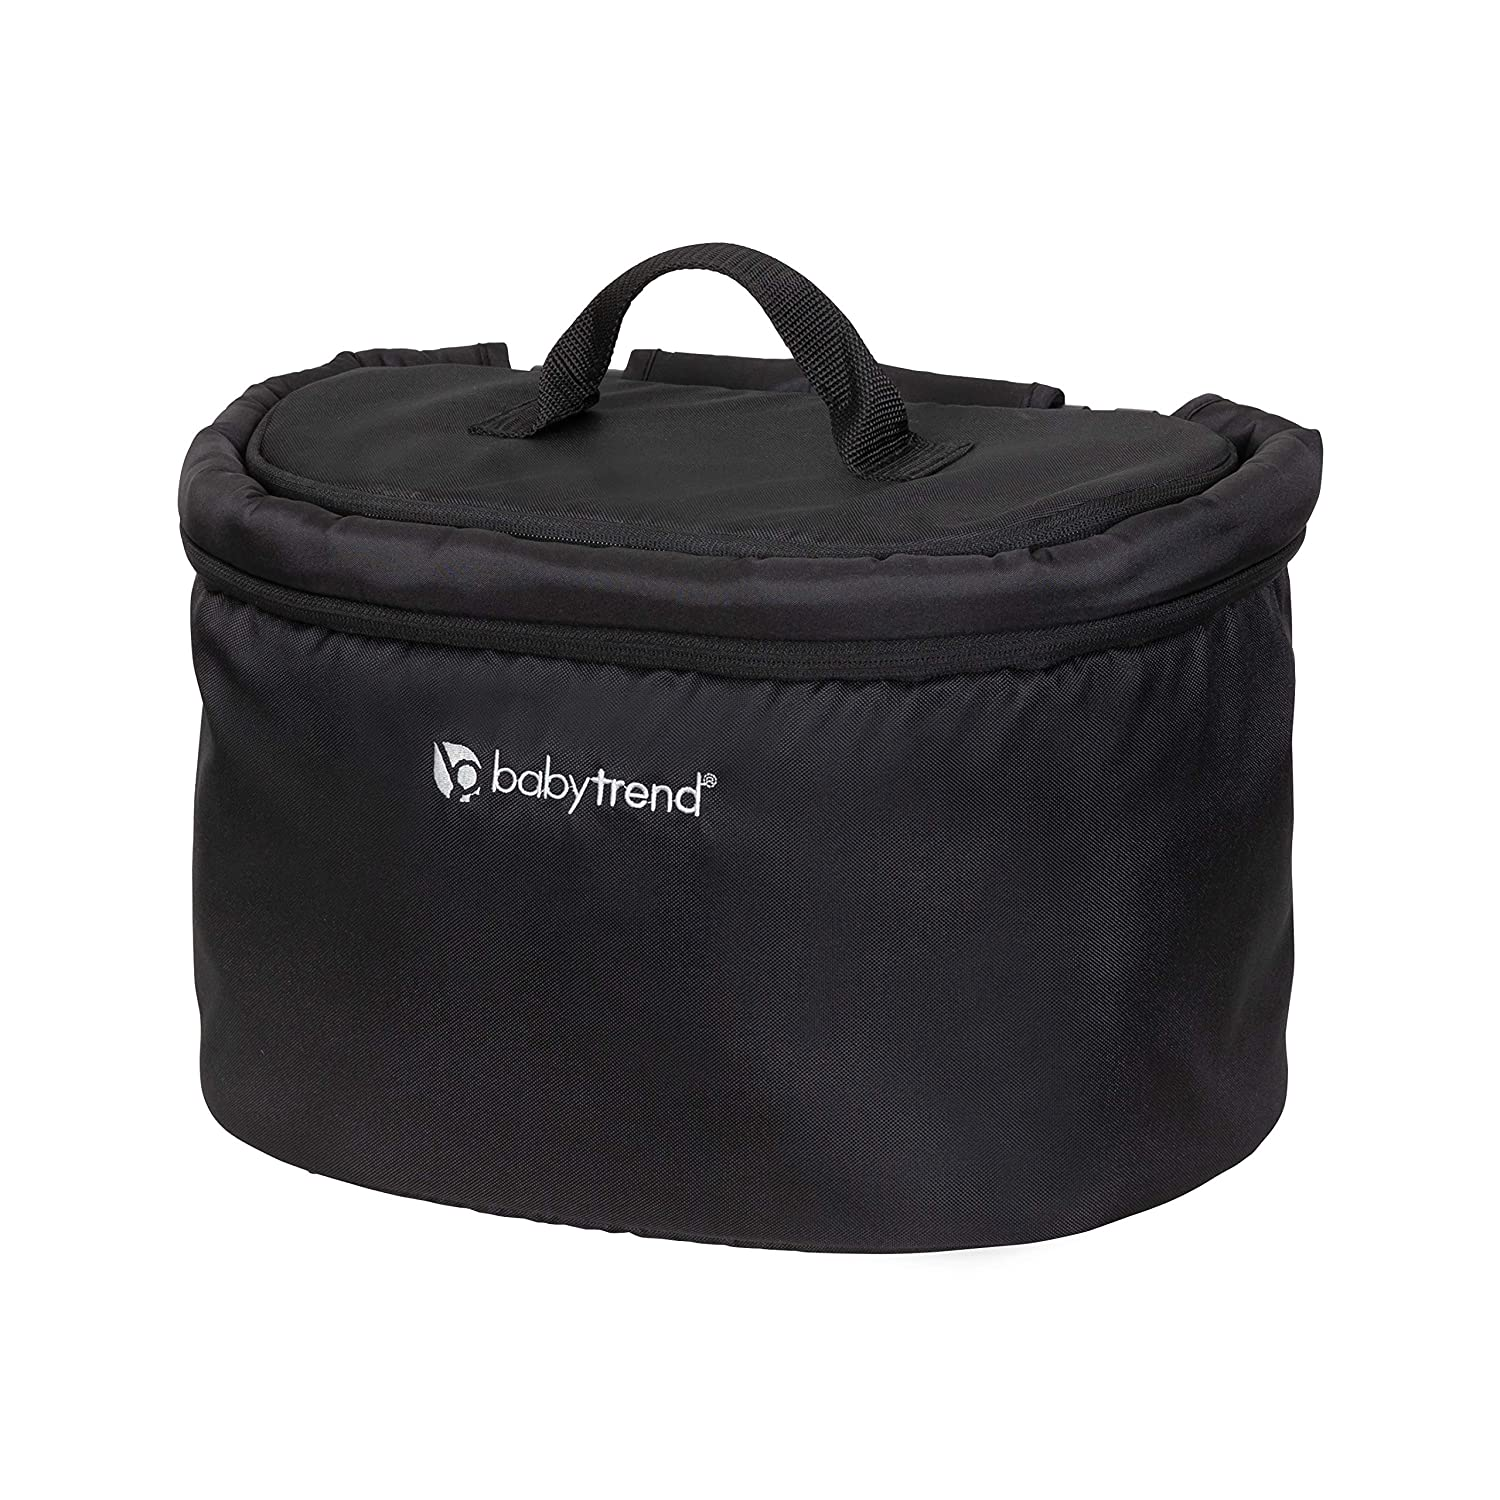 Baby Trend Insulated and Versatile Stroller Wagon Deluxe Storage Basket for Expedition and Tour Wagon Models